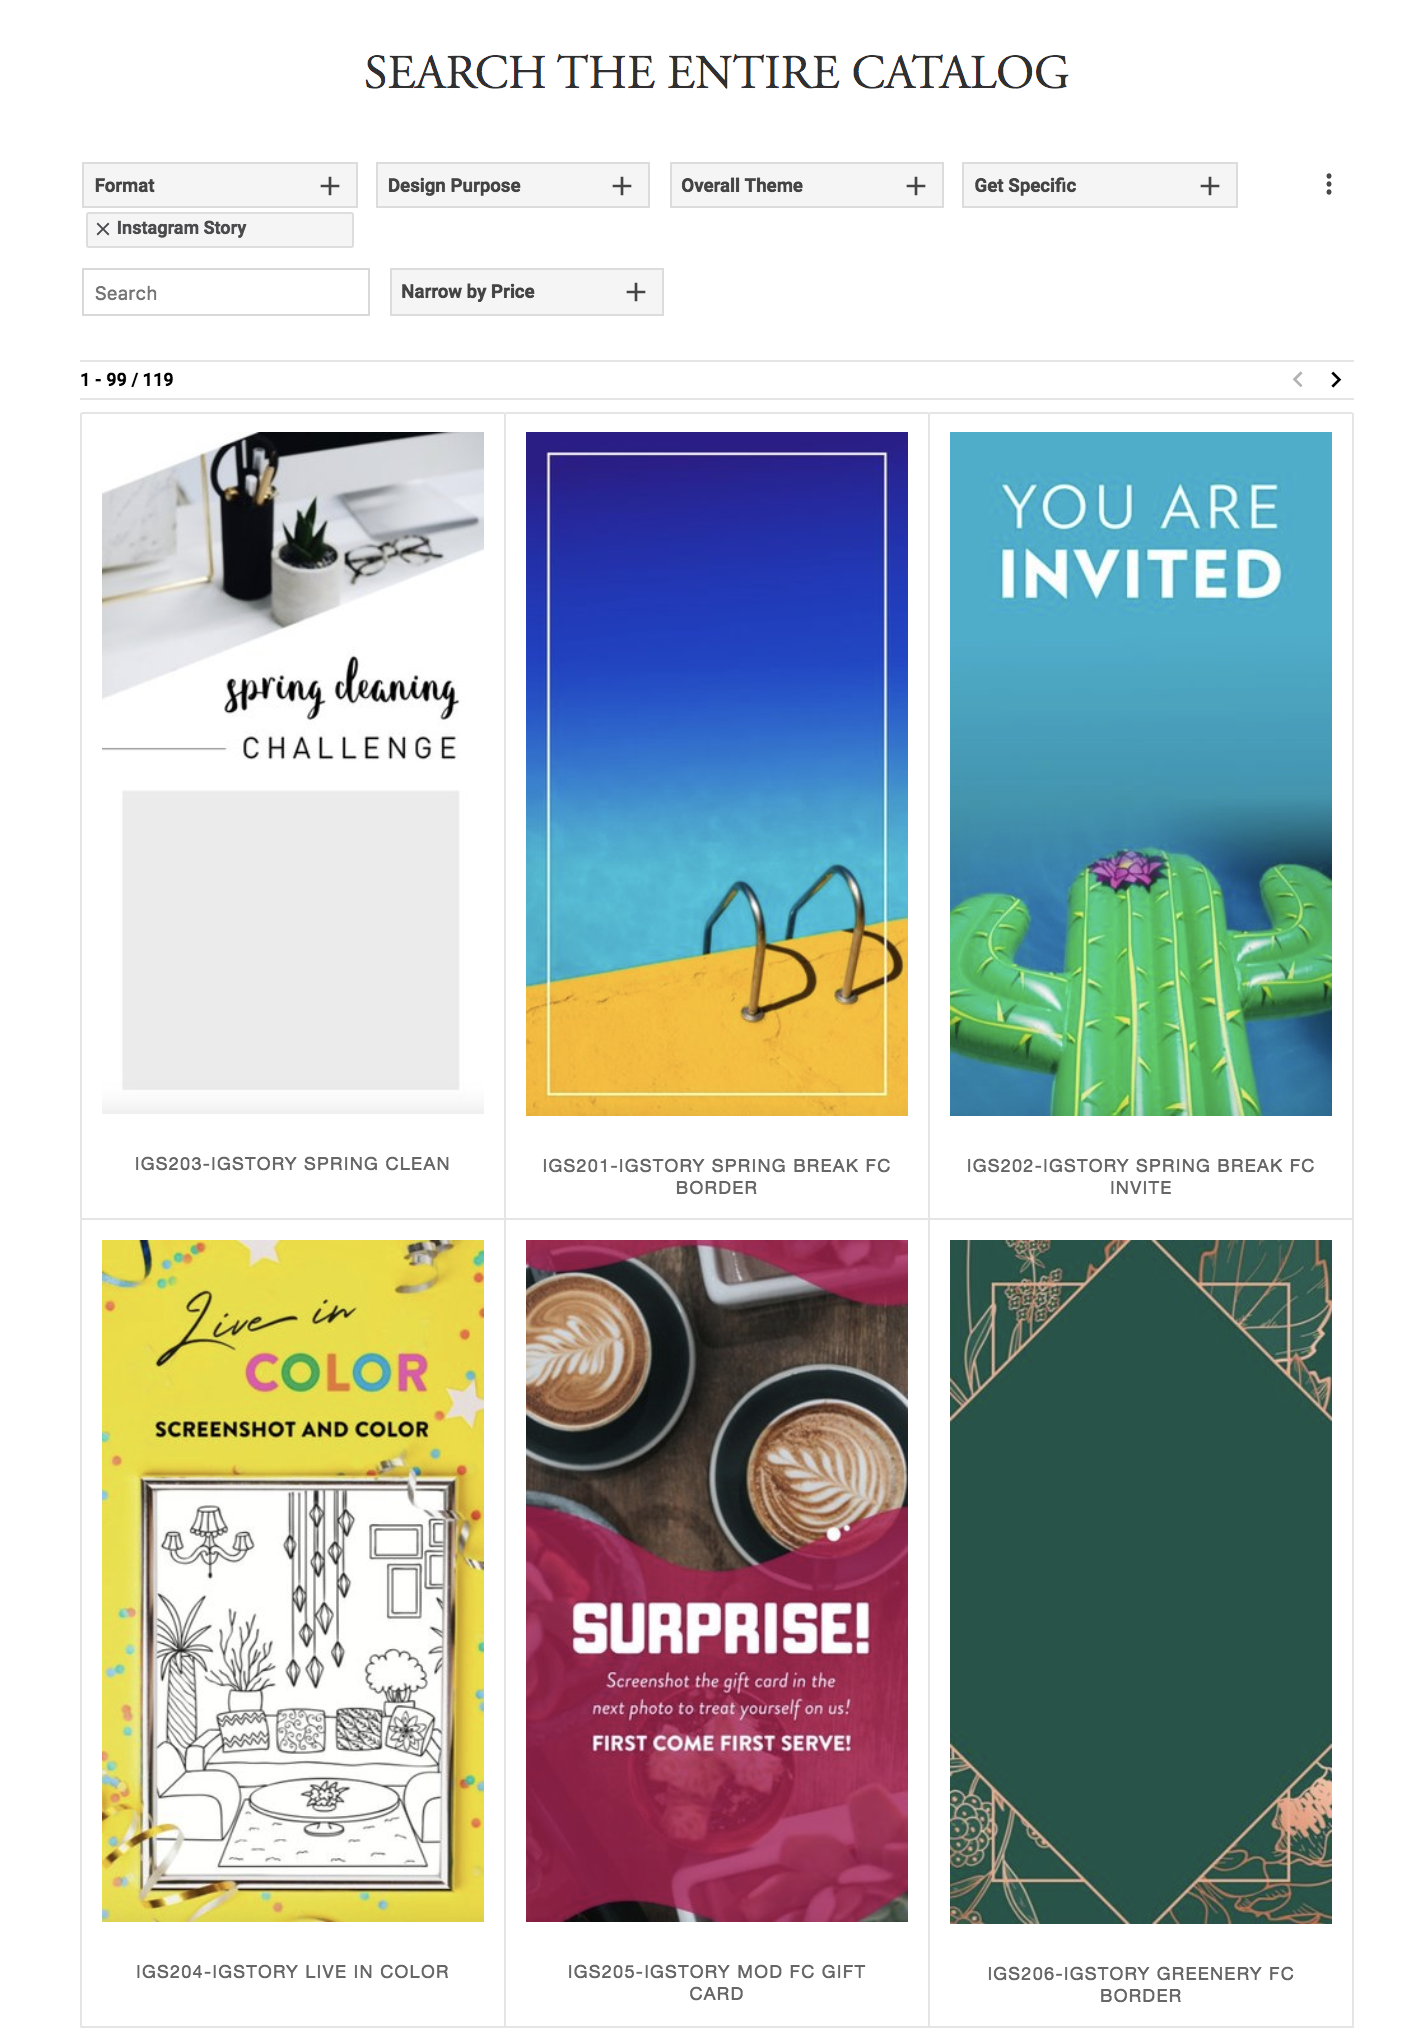 Grab your IG Stories from The Sprout catalog. Search  here . Select  Instagram Story  under  Format .